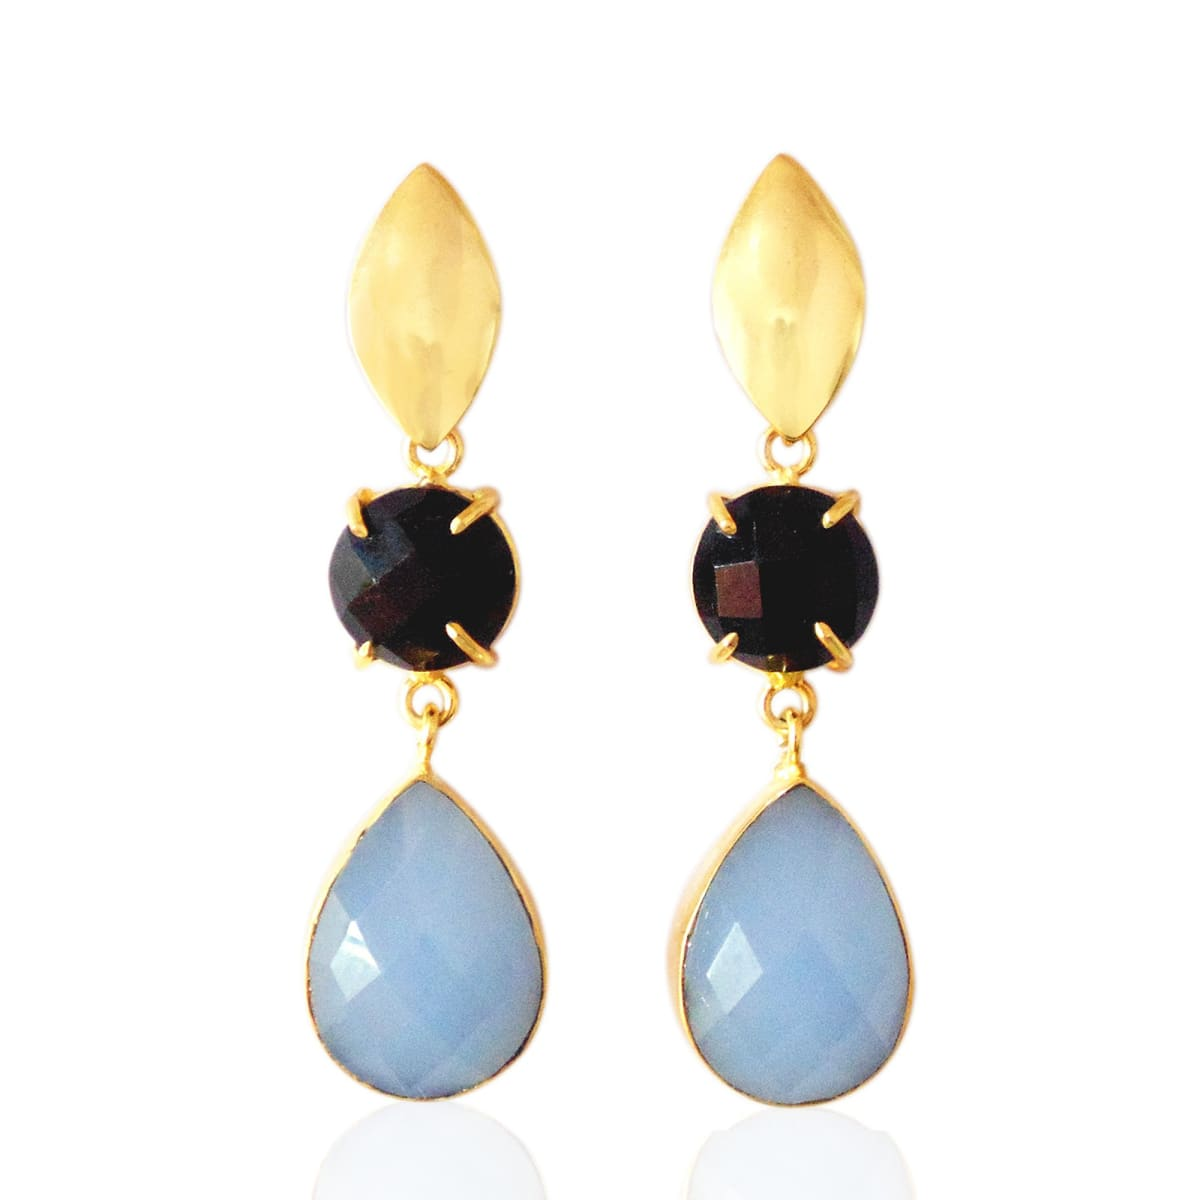 18K Gold Plated Black Onyx And Chalcedony Gemstone Prong Set Teardrop Earrings - by Bhagat Jewels